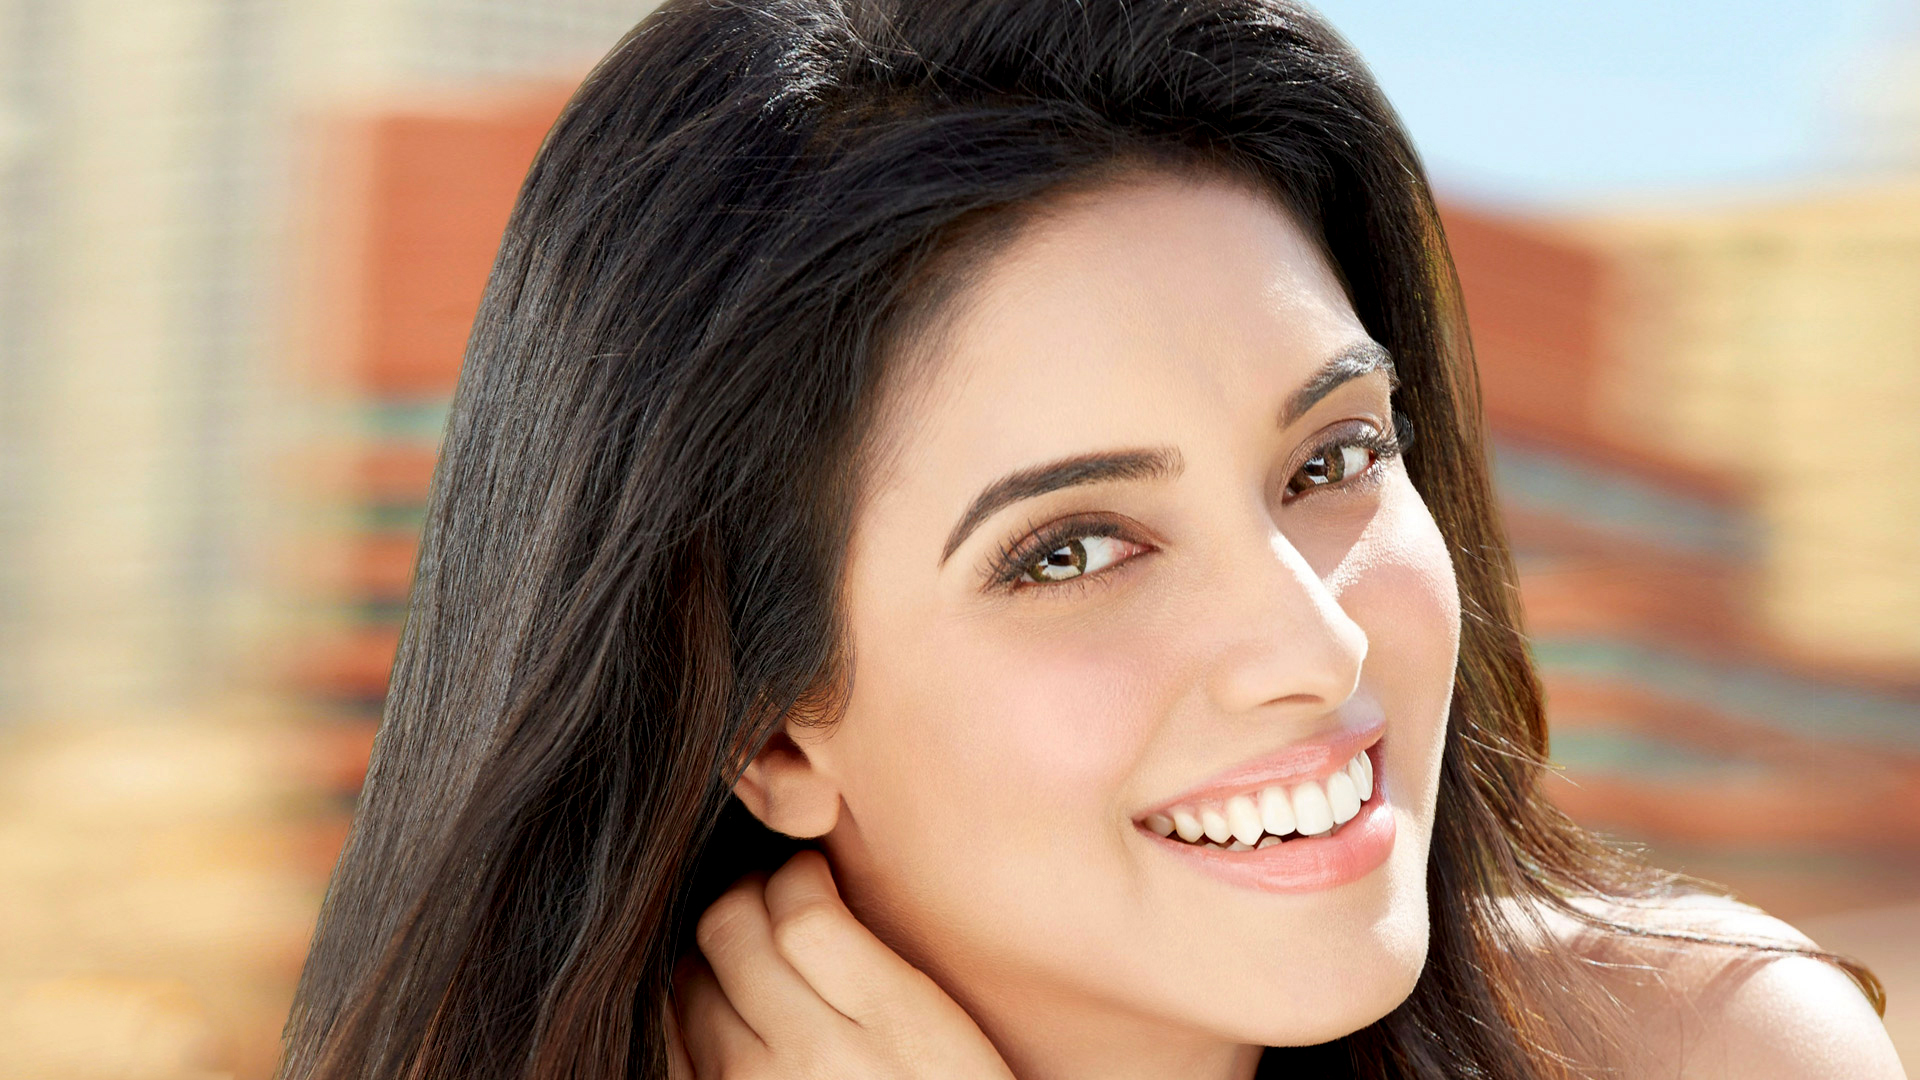 facebook covers for asin • popopics